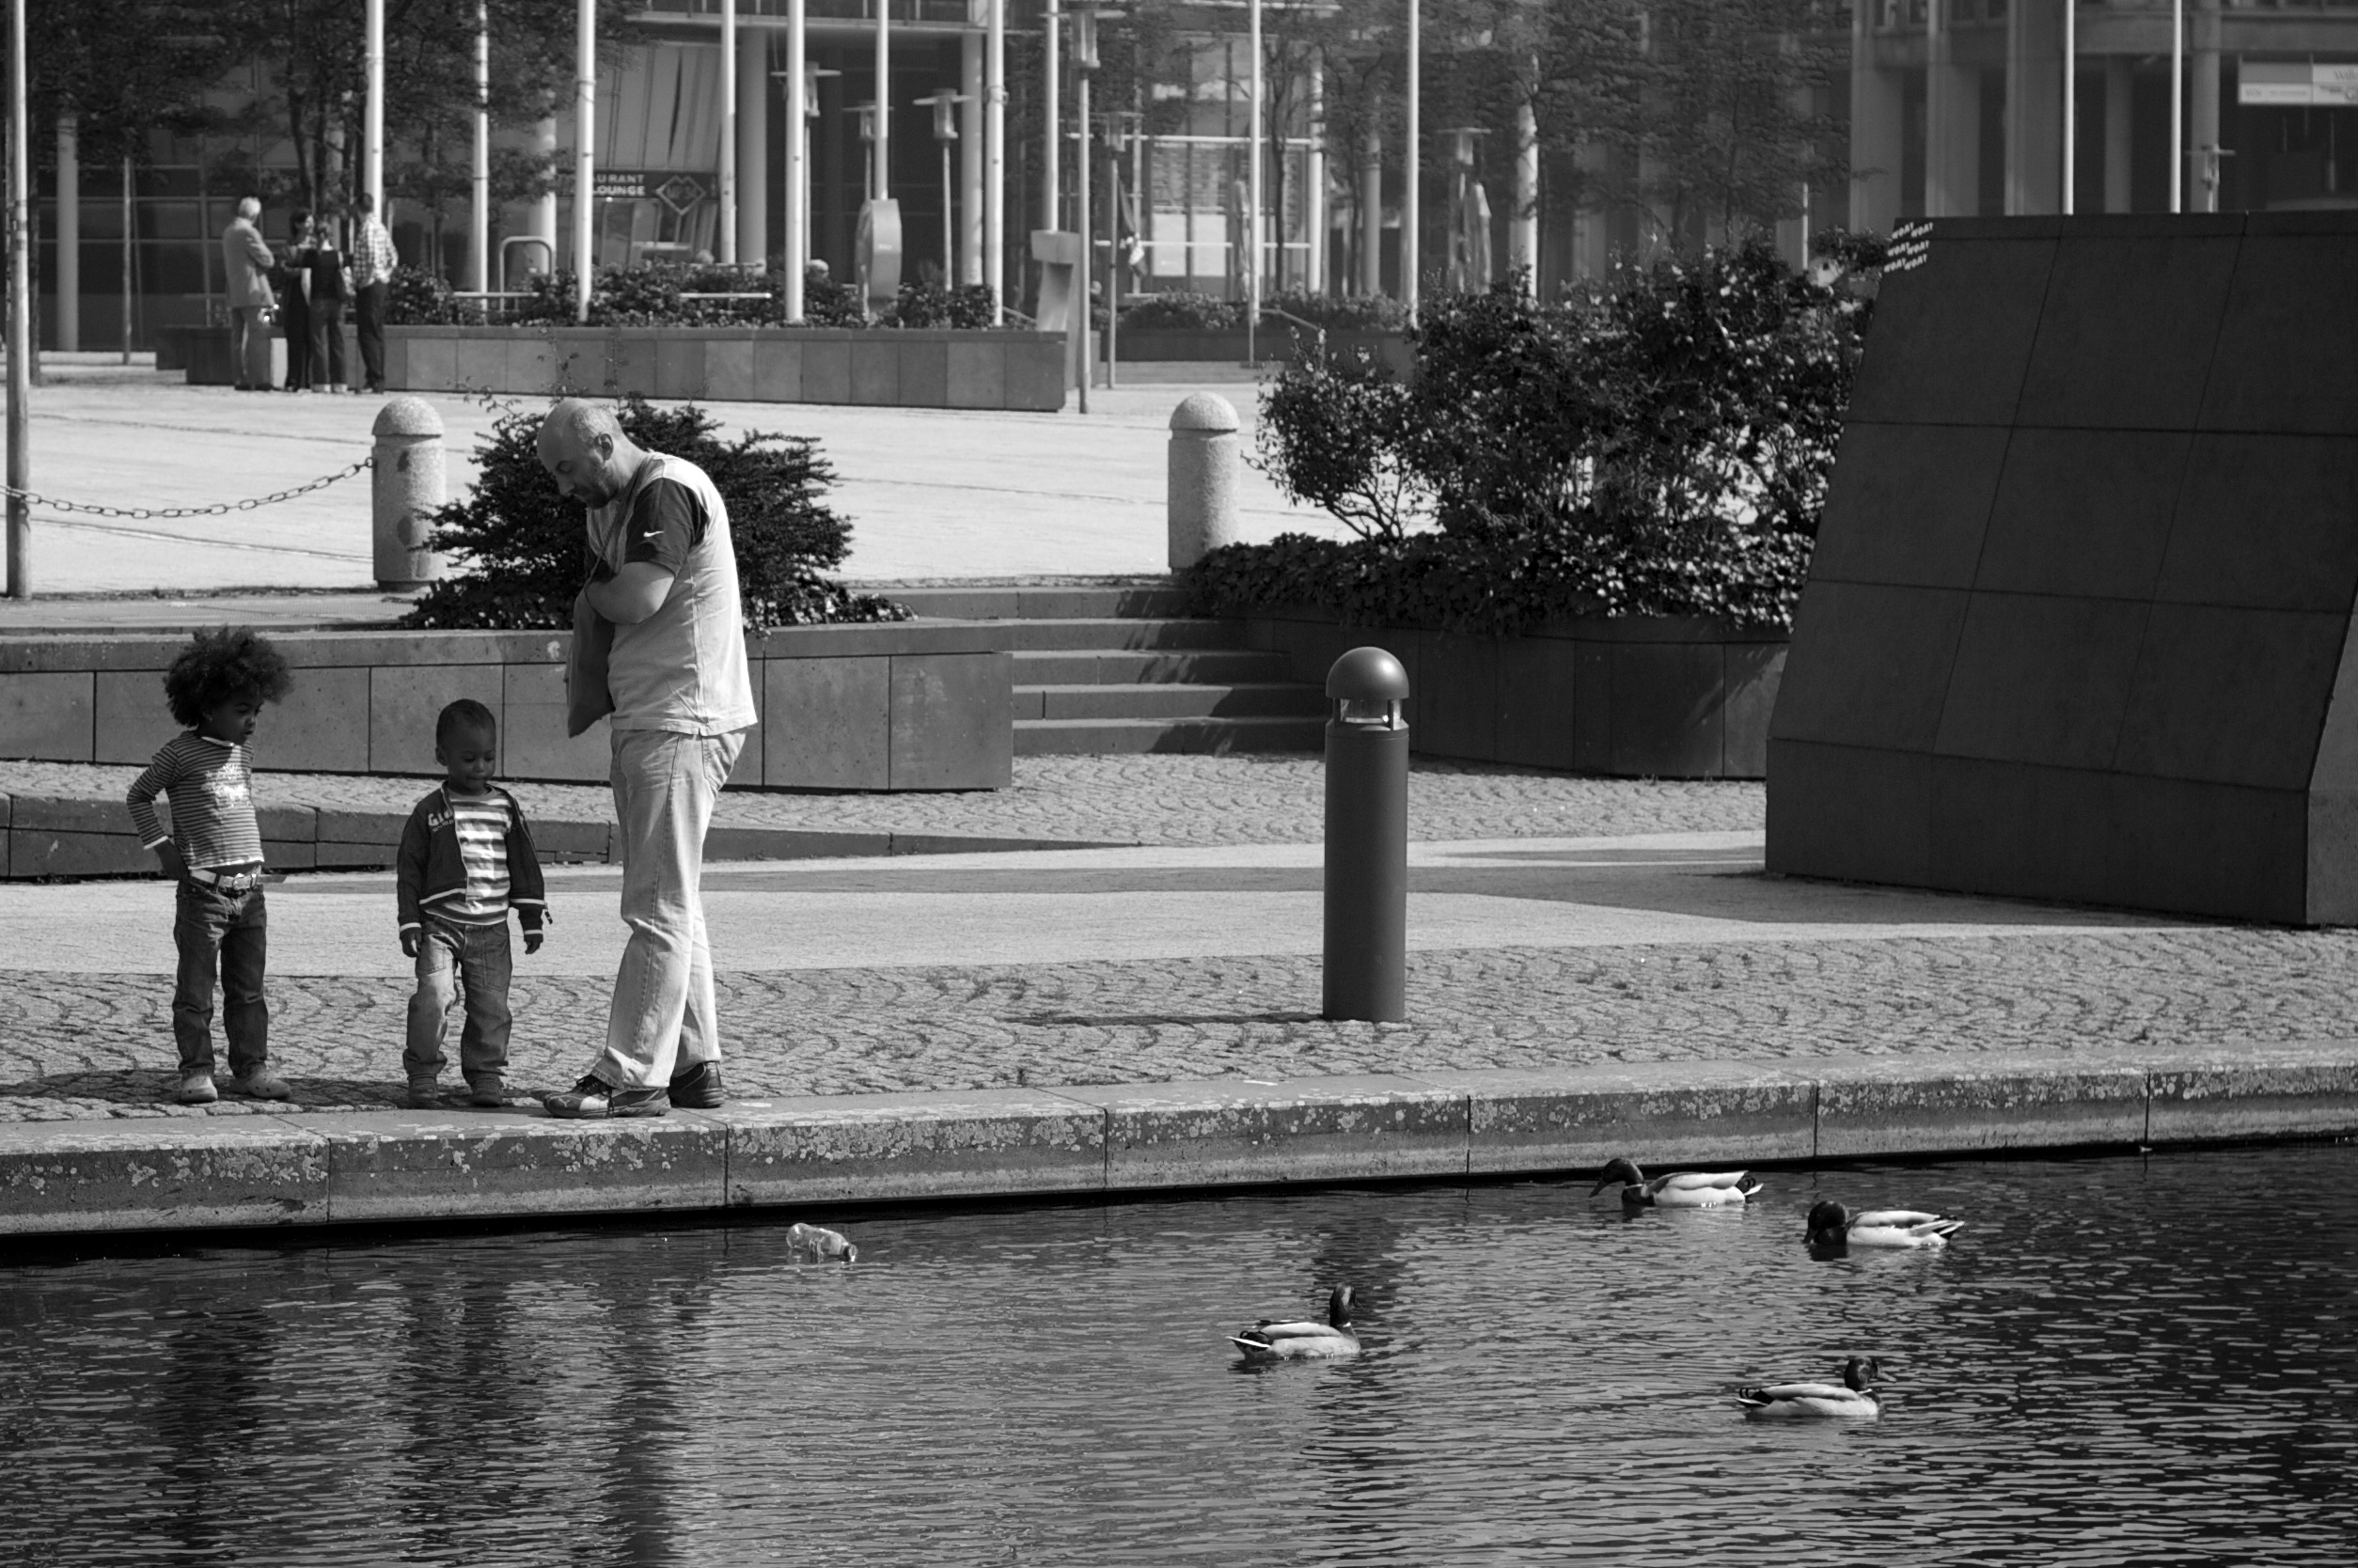 Probably a father with his children, watching and feeding ducks.